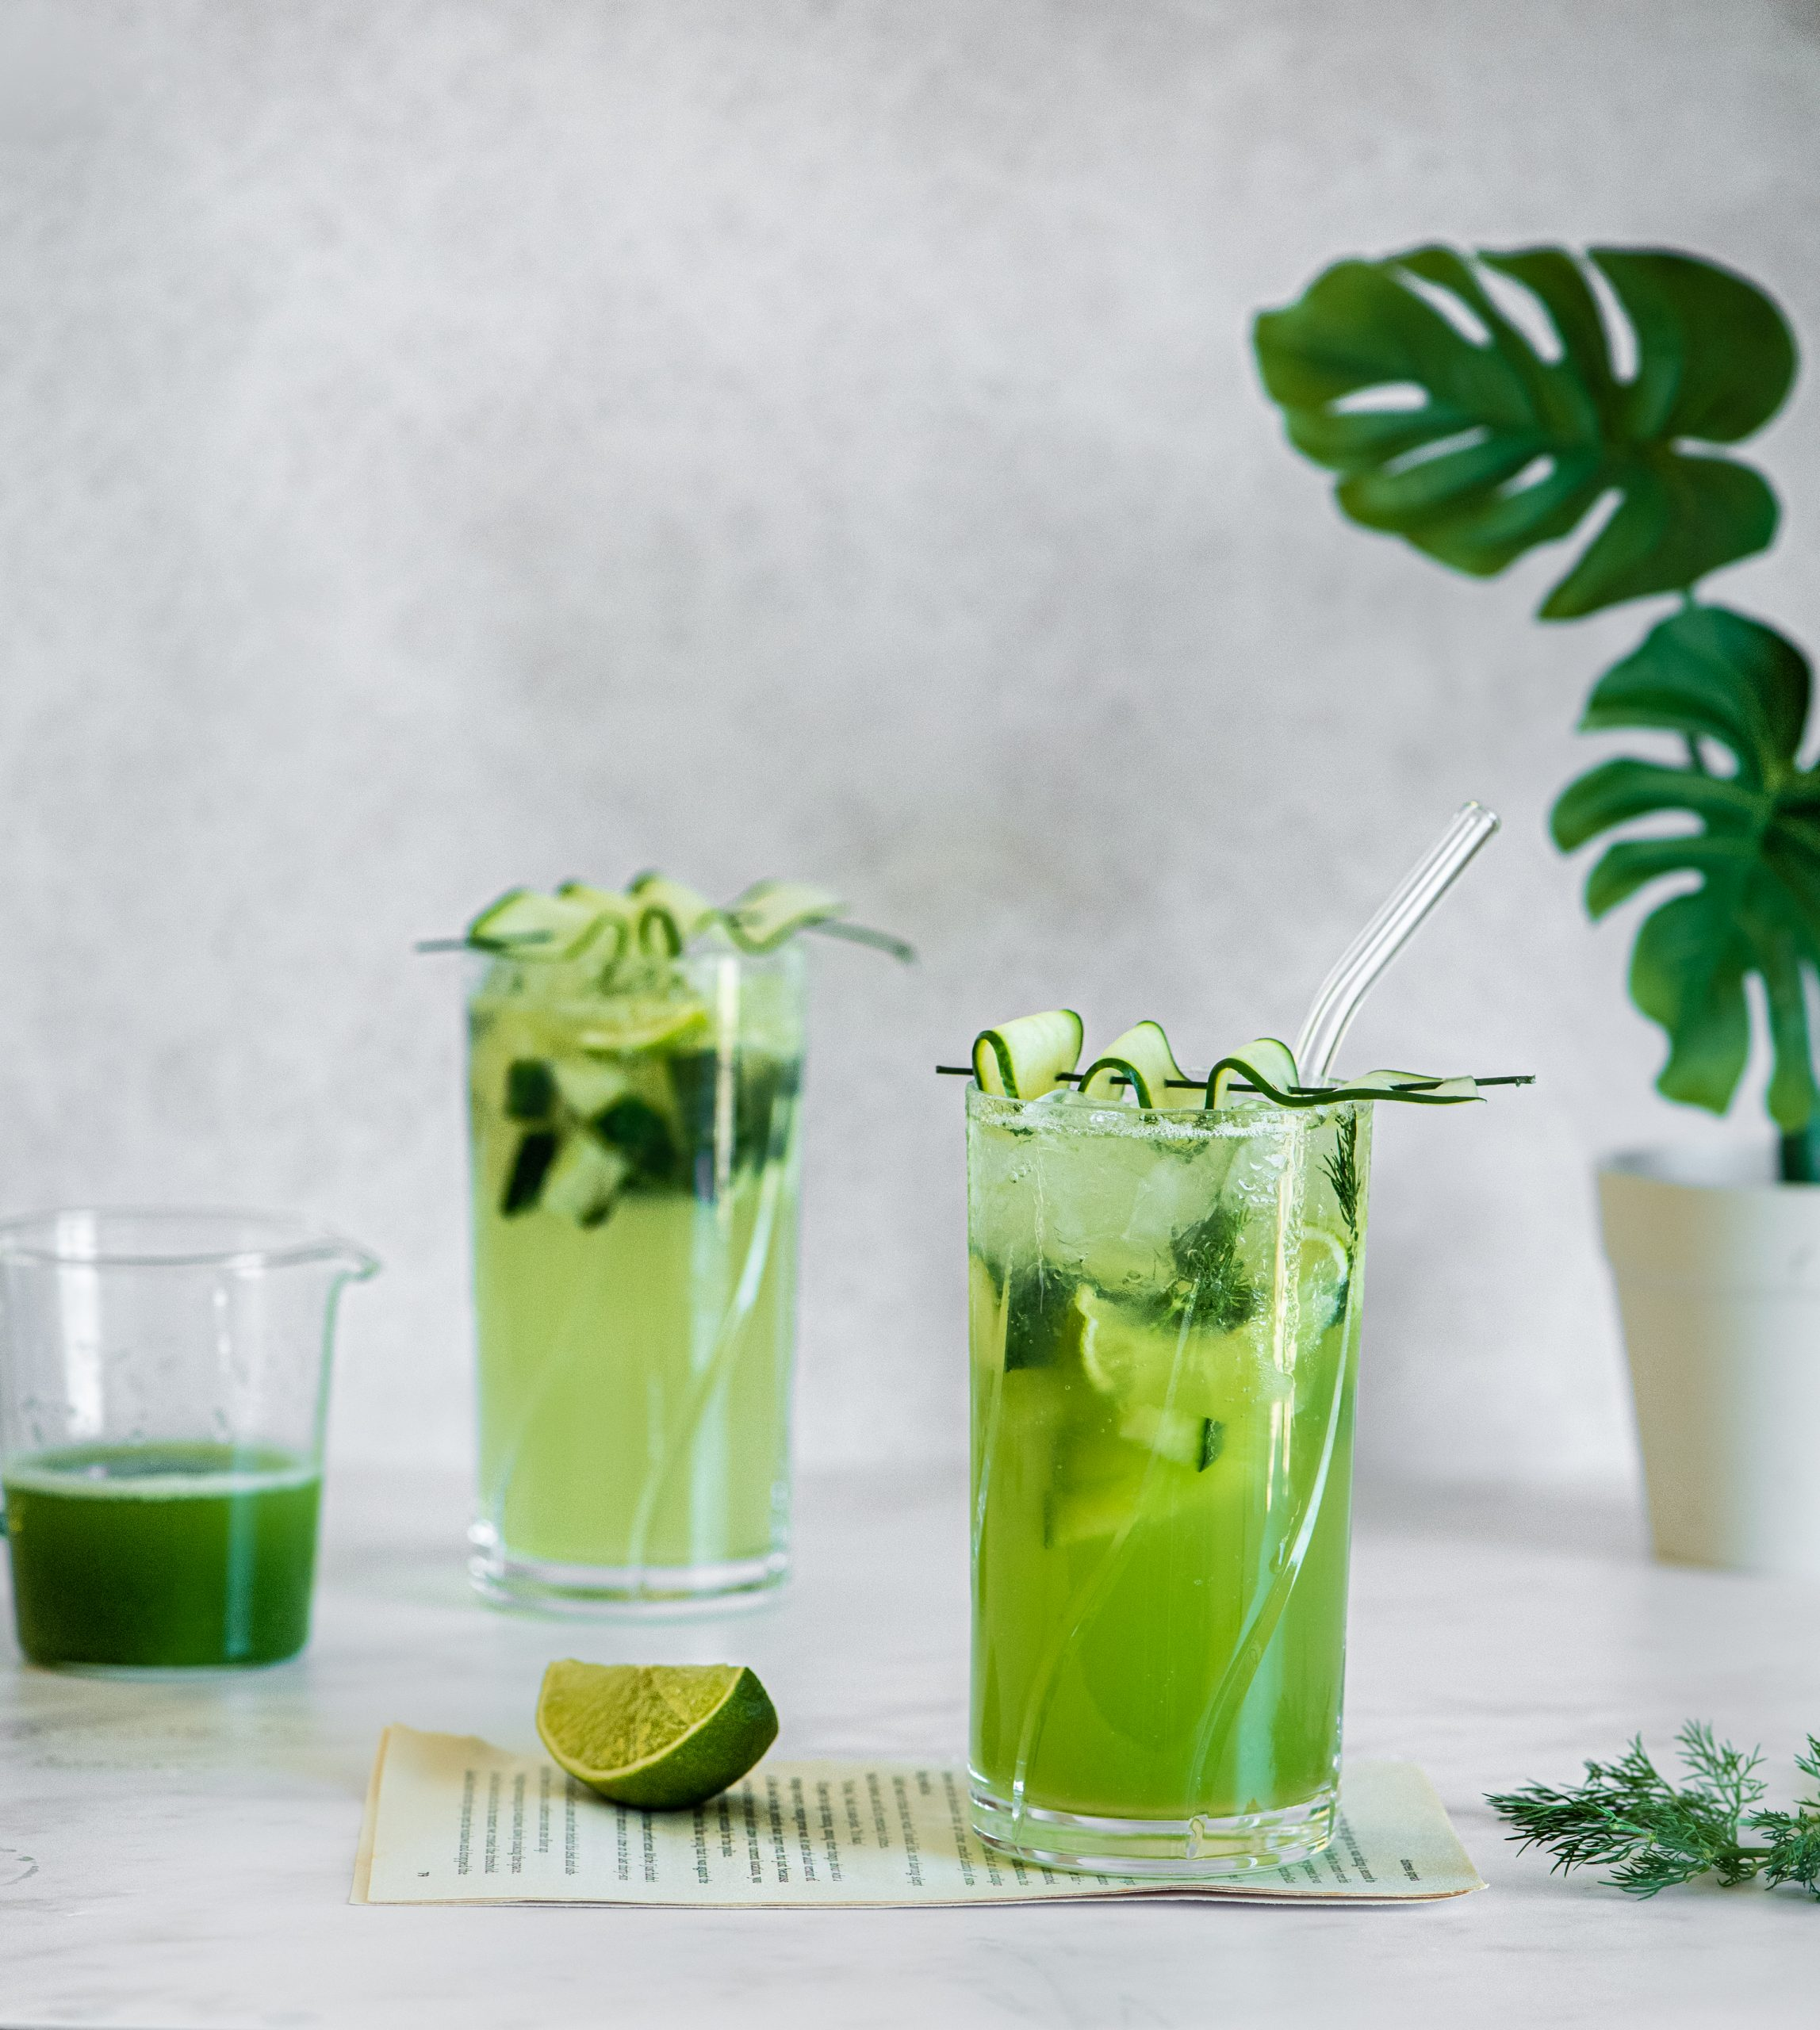 2 glasses of cucumber and dill gin cocktails with a cucumber twist